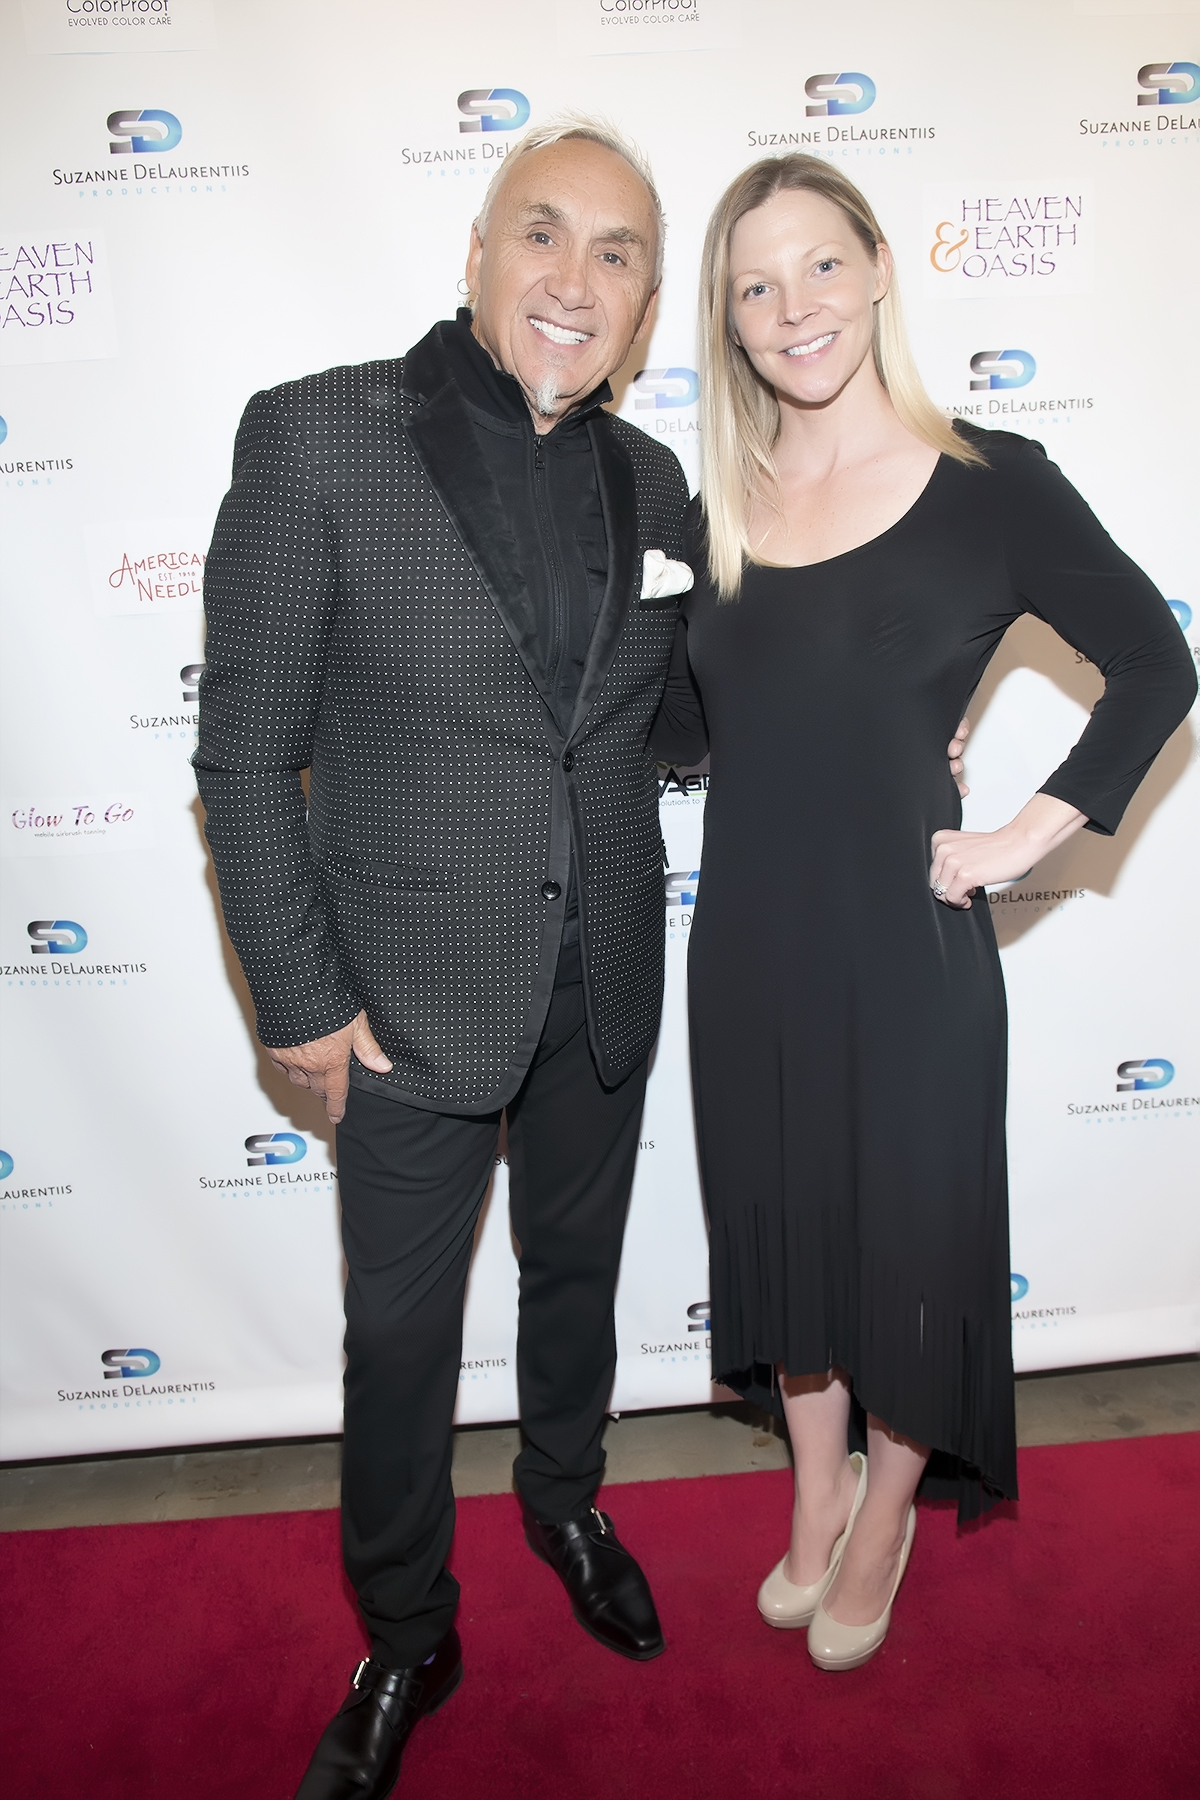 ColorProof's International Creative Director, Phillip Wilson, and Vice President of Marketing, Kelly Beam